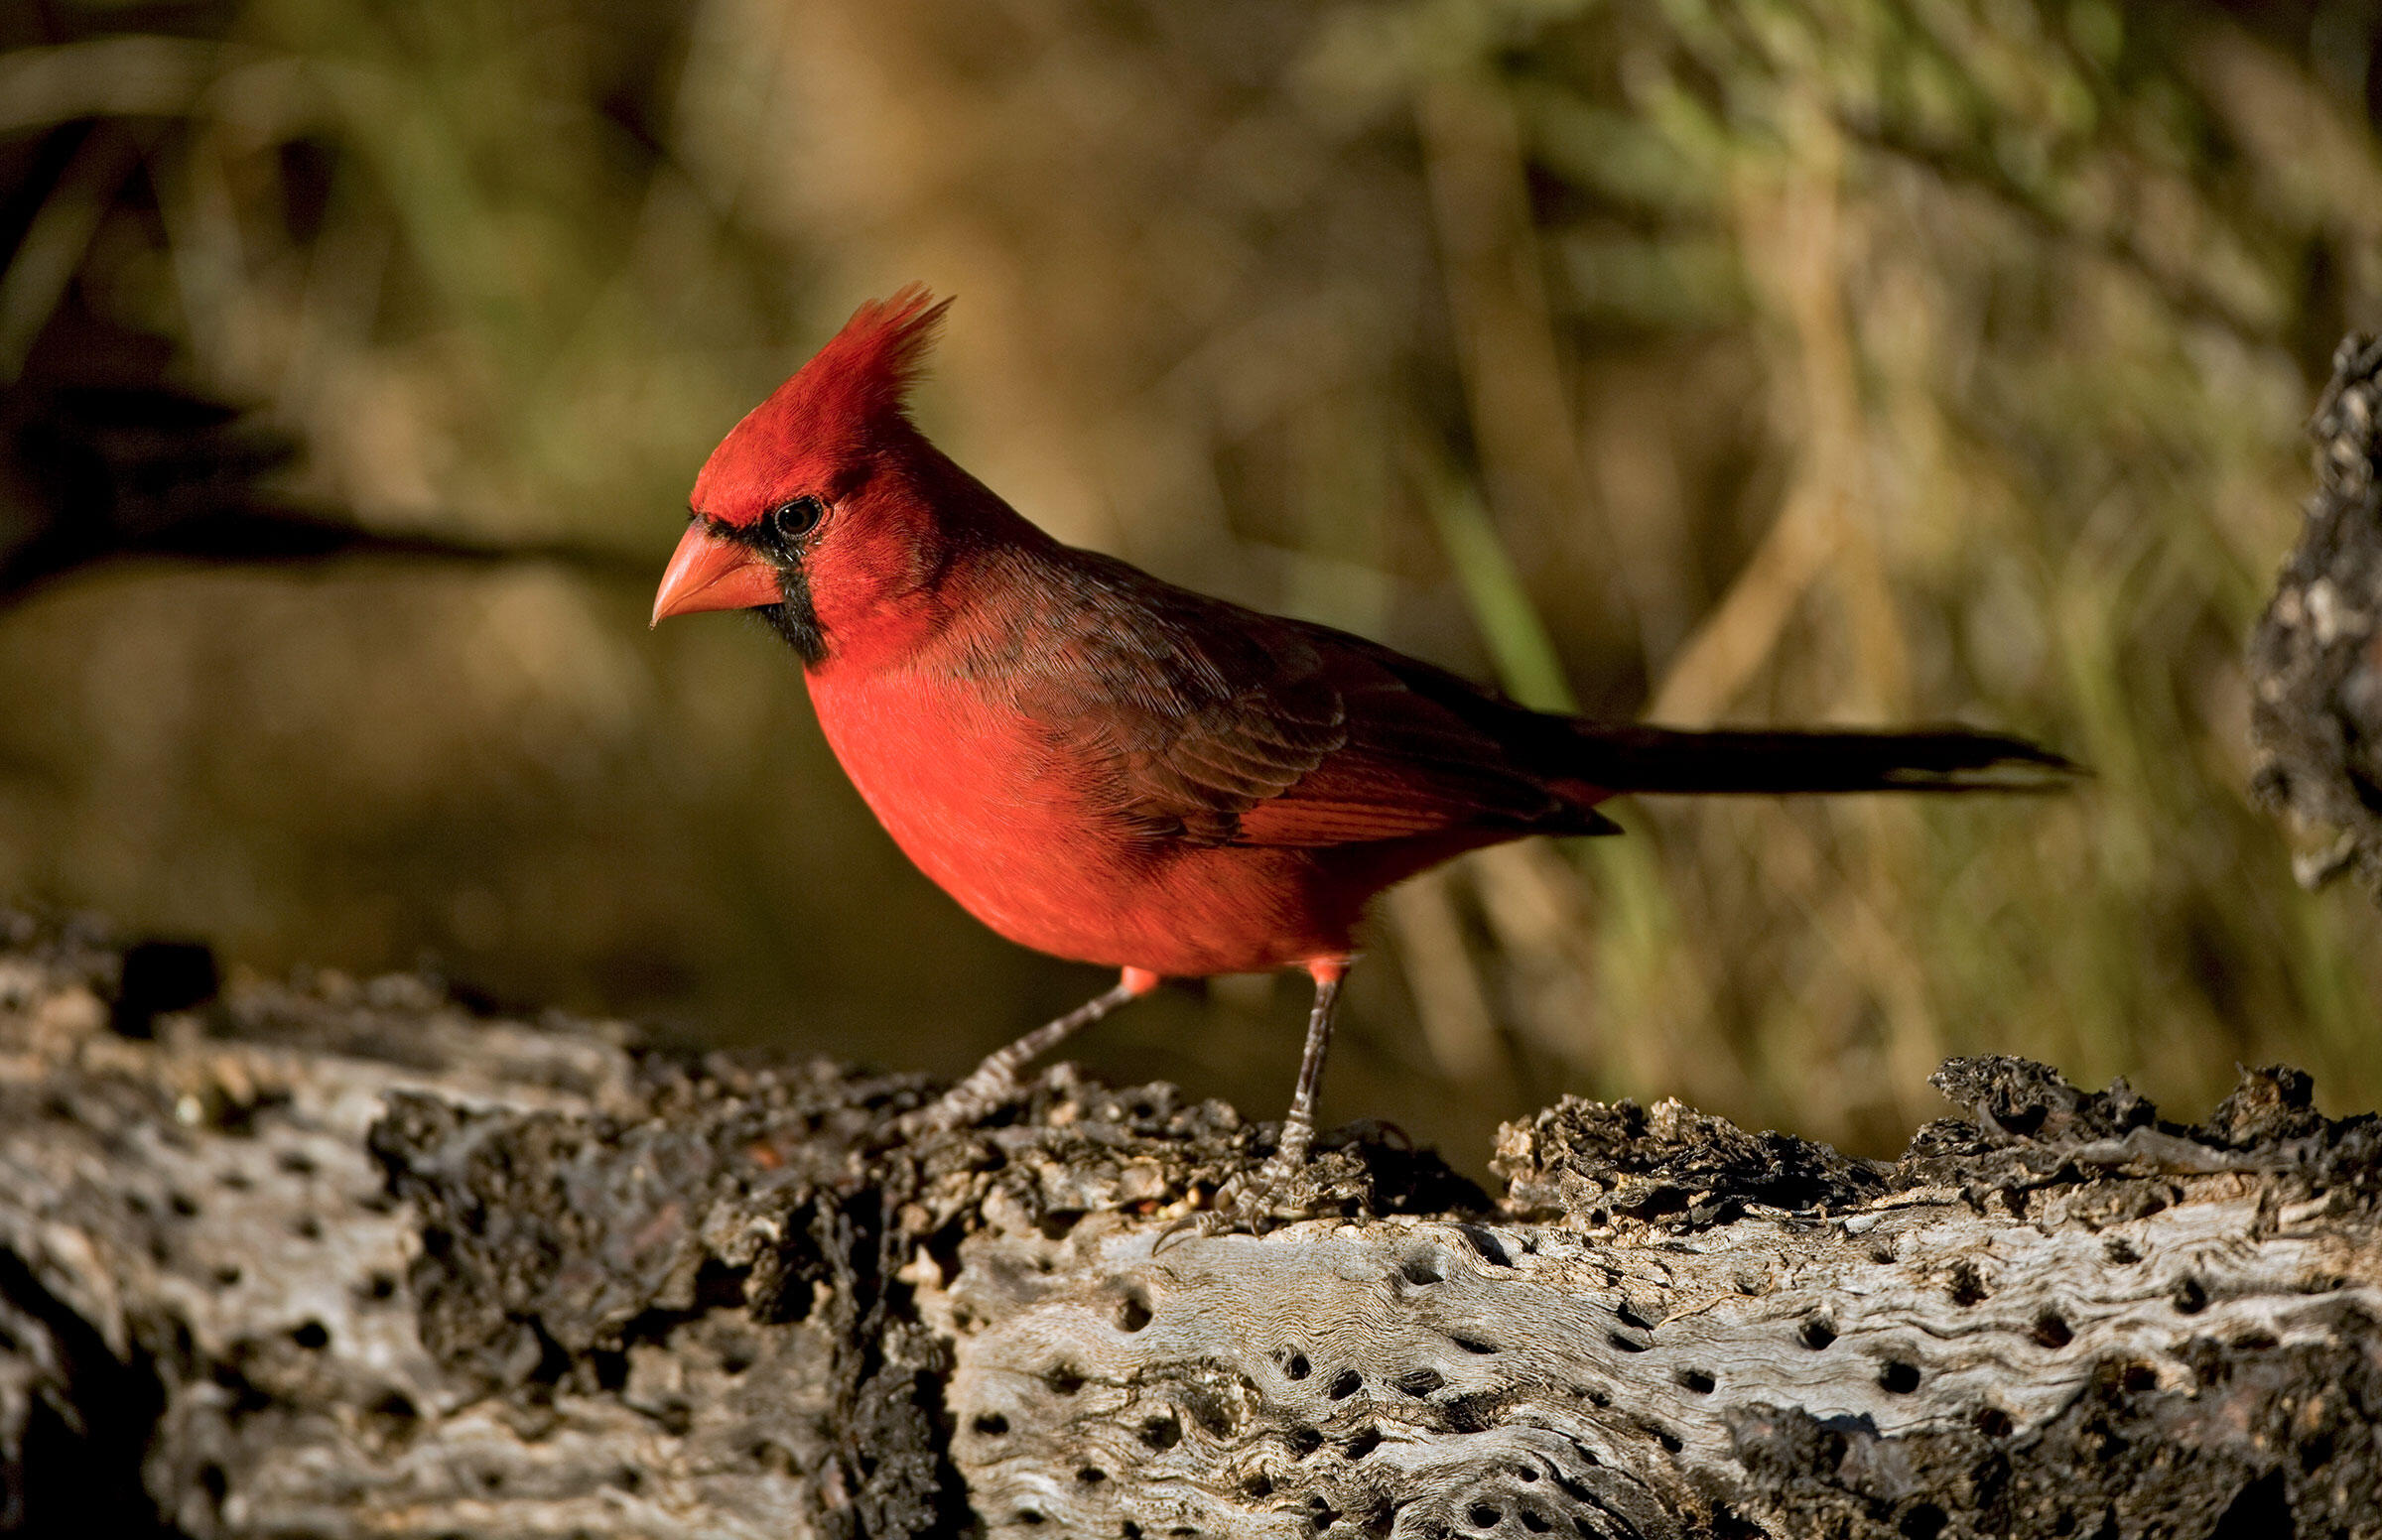 The Sonoran Desert subspecies of the Northern Cardinal can only be found in Arizona, Southern California, and Mexico. It looks and sounds different from the main population, so much so that it may be its own species. John Cancalosi/Alamy